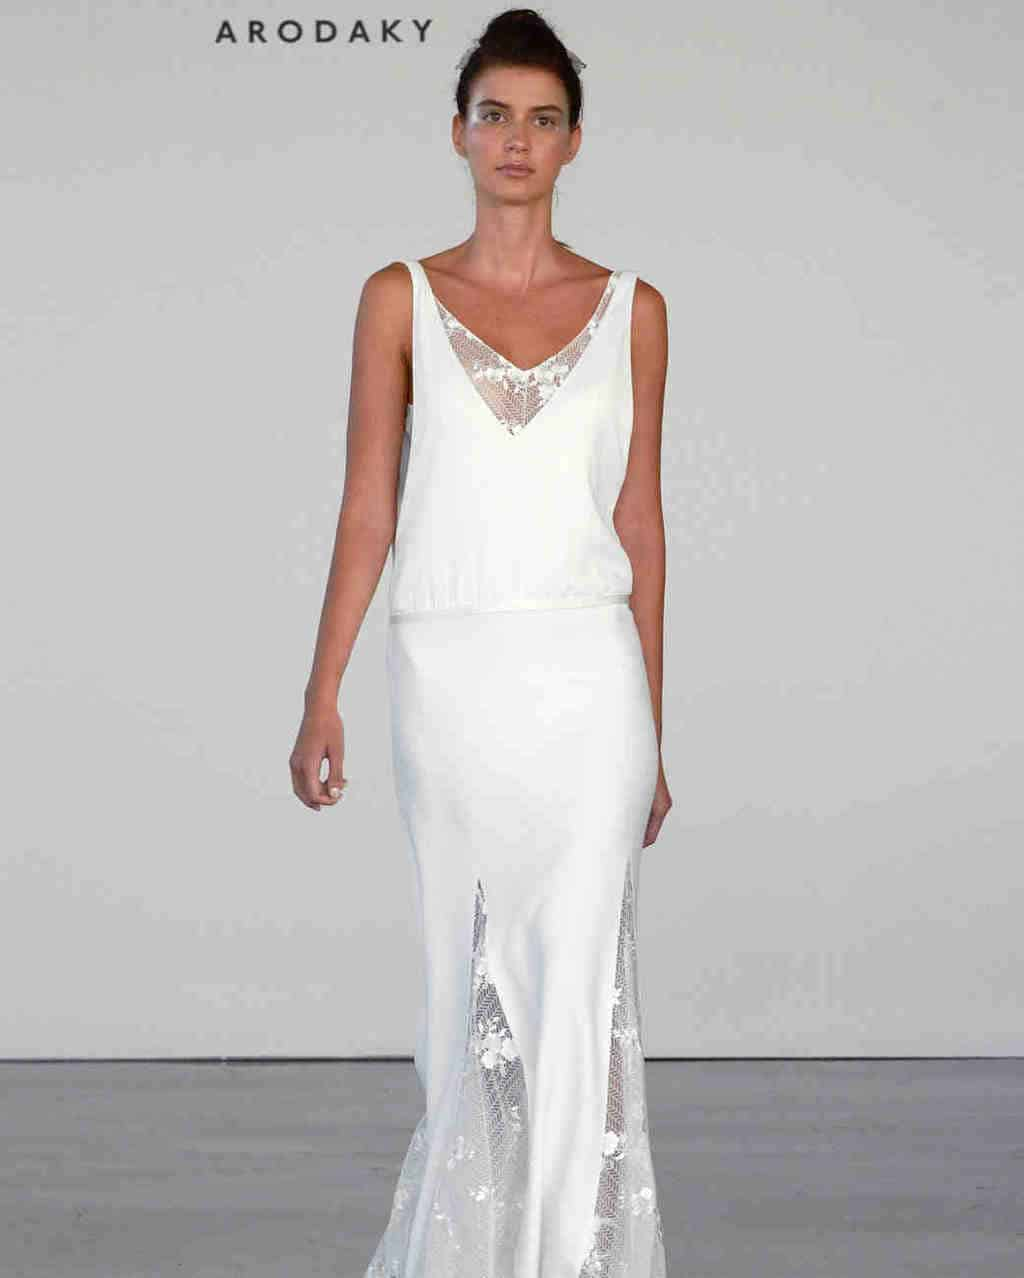 rime-arodaky-wedding-dress-fall2017-6203351-020_vert-1